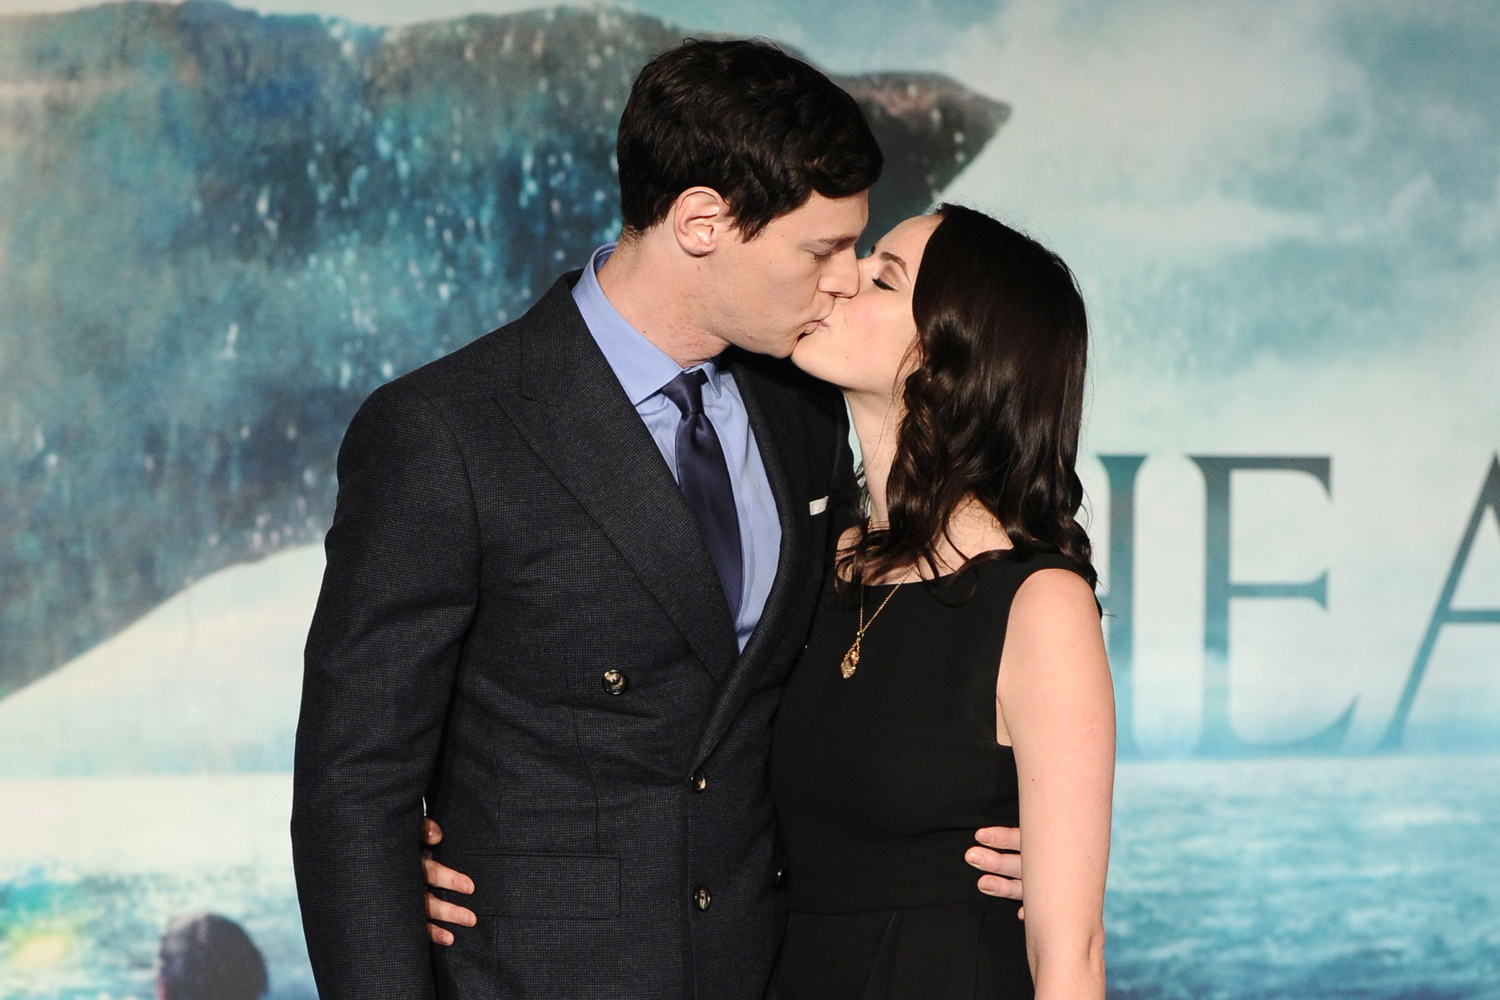 Ben Walker and Kaya Scodelario kissing